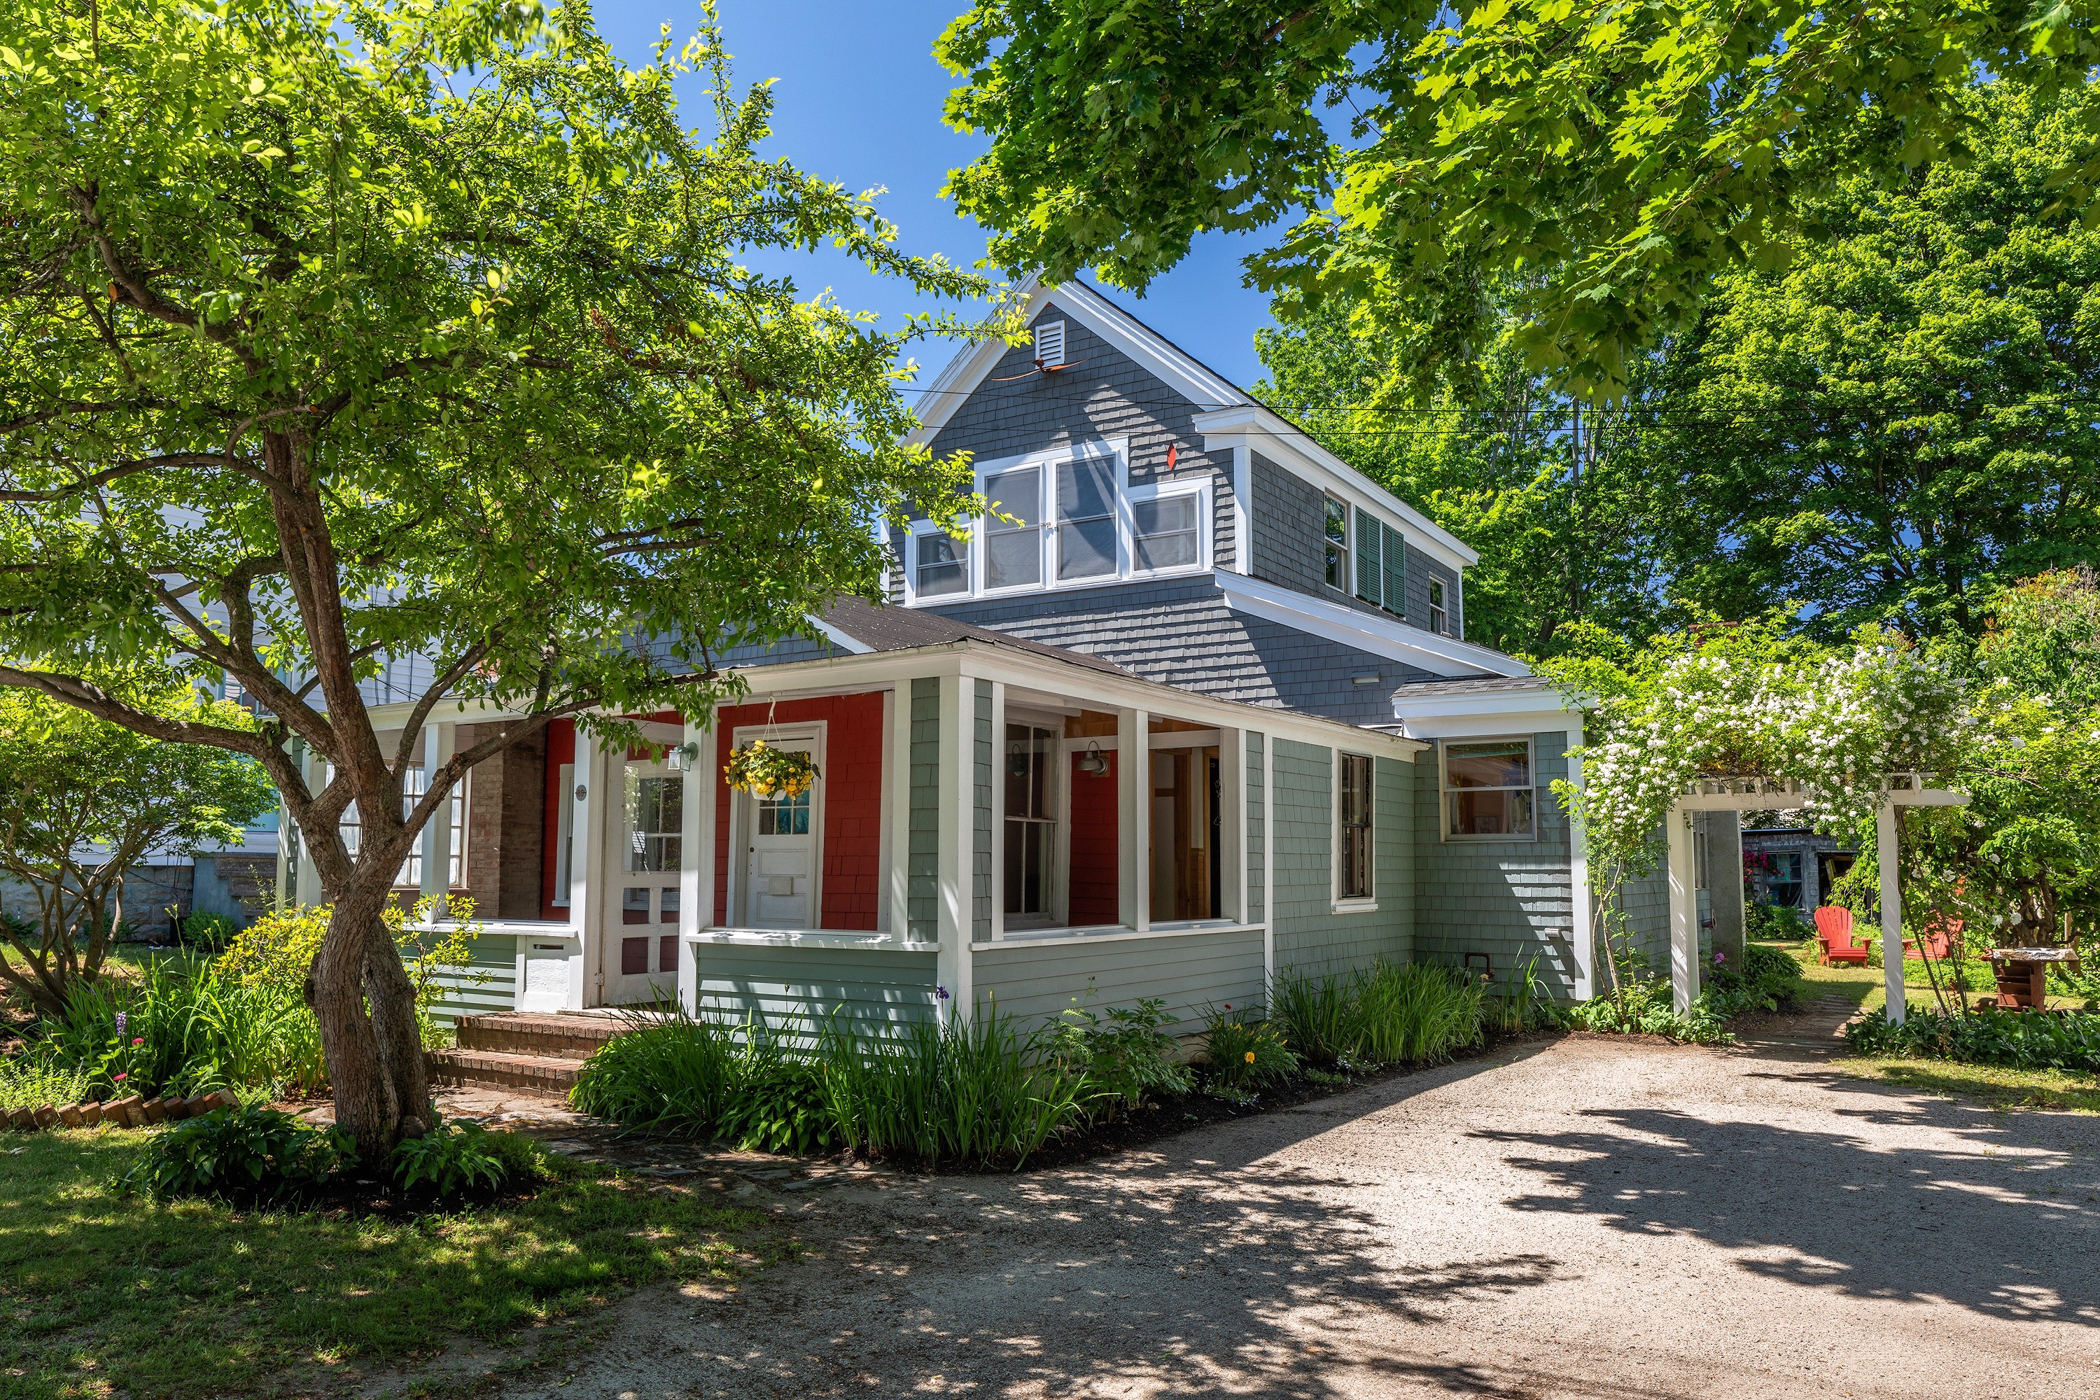 Admirable Home For Sale 89 Willow Street South Portland Maine Home Interior And Landscaping Palasignezvosmurscom